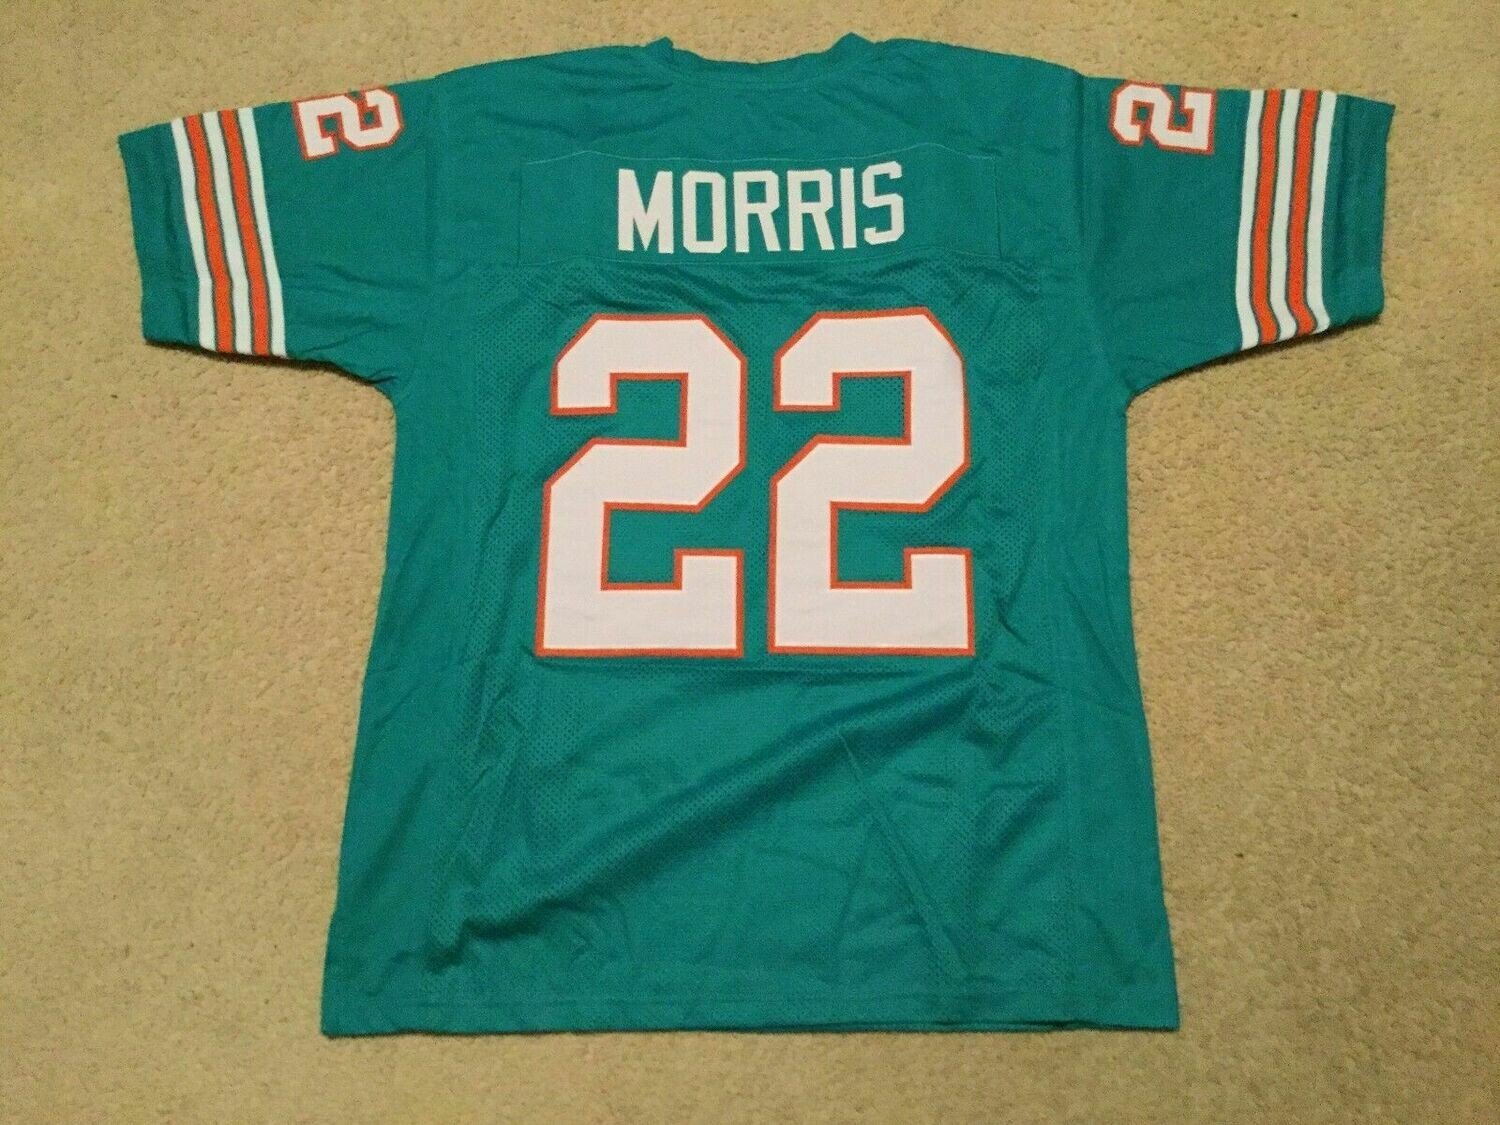 UNSIGNED CUSTOM Sewn Stitched Mercury Morris Teal Jersey